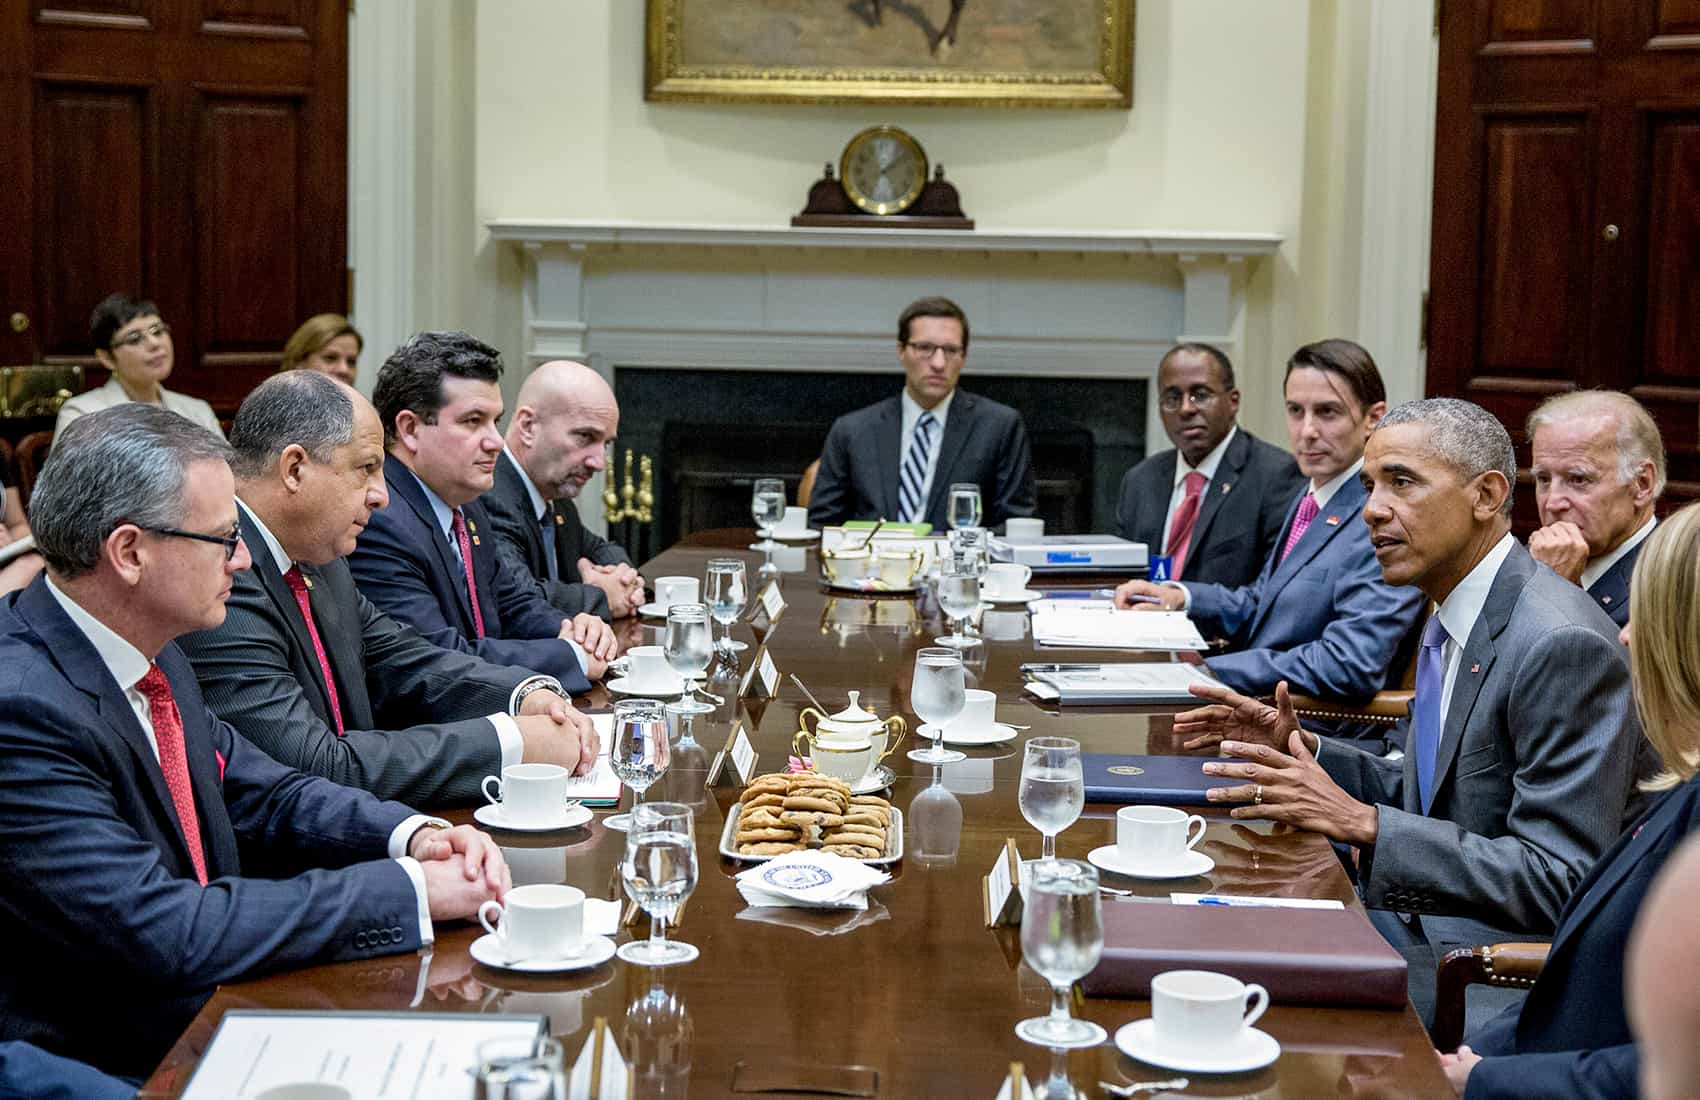 President Luis Guillermo Solís meeting with President Barack Obama, VP Joe Biden. Aug. 22, 2016.